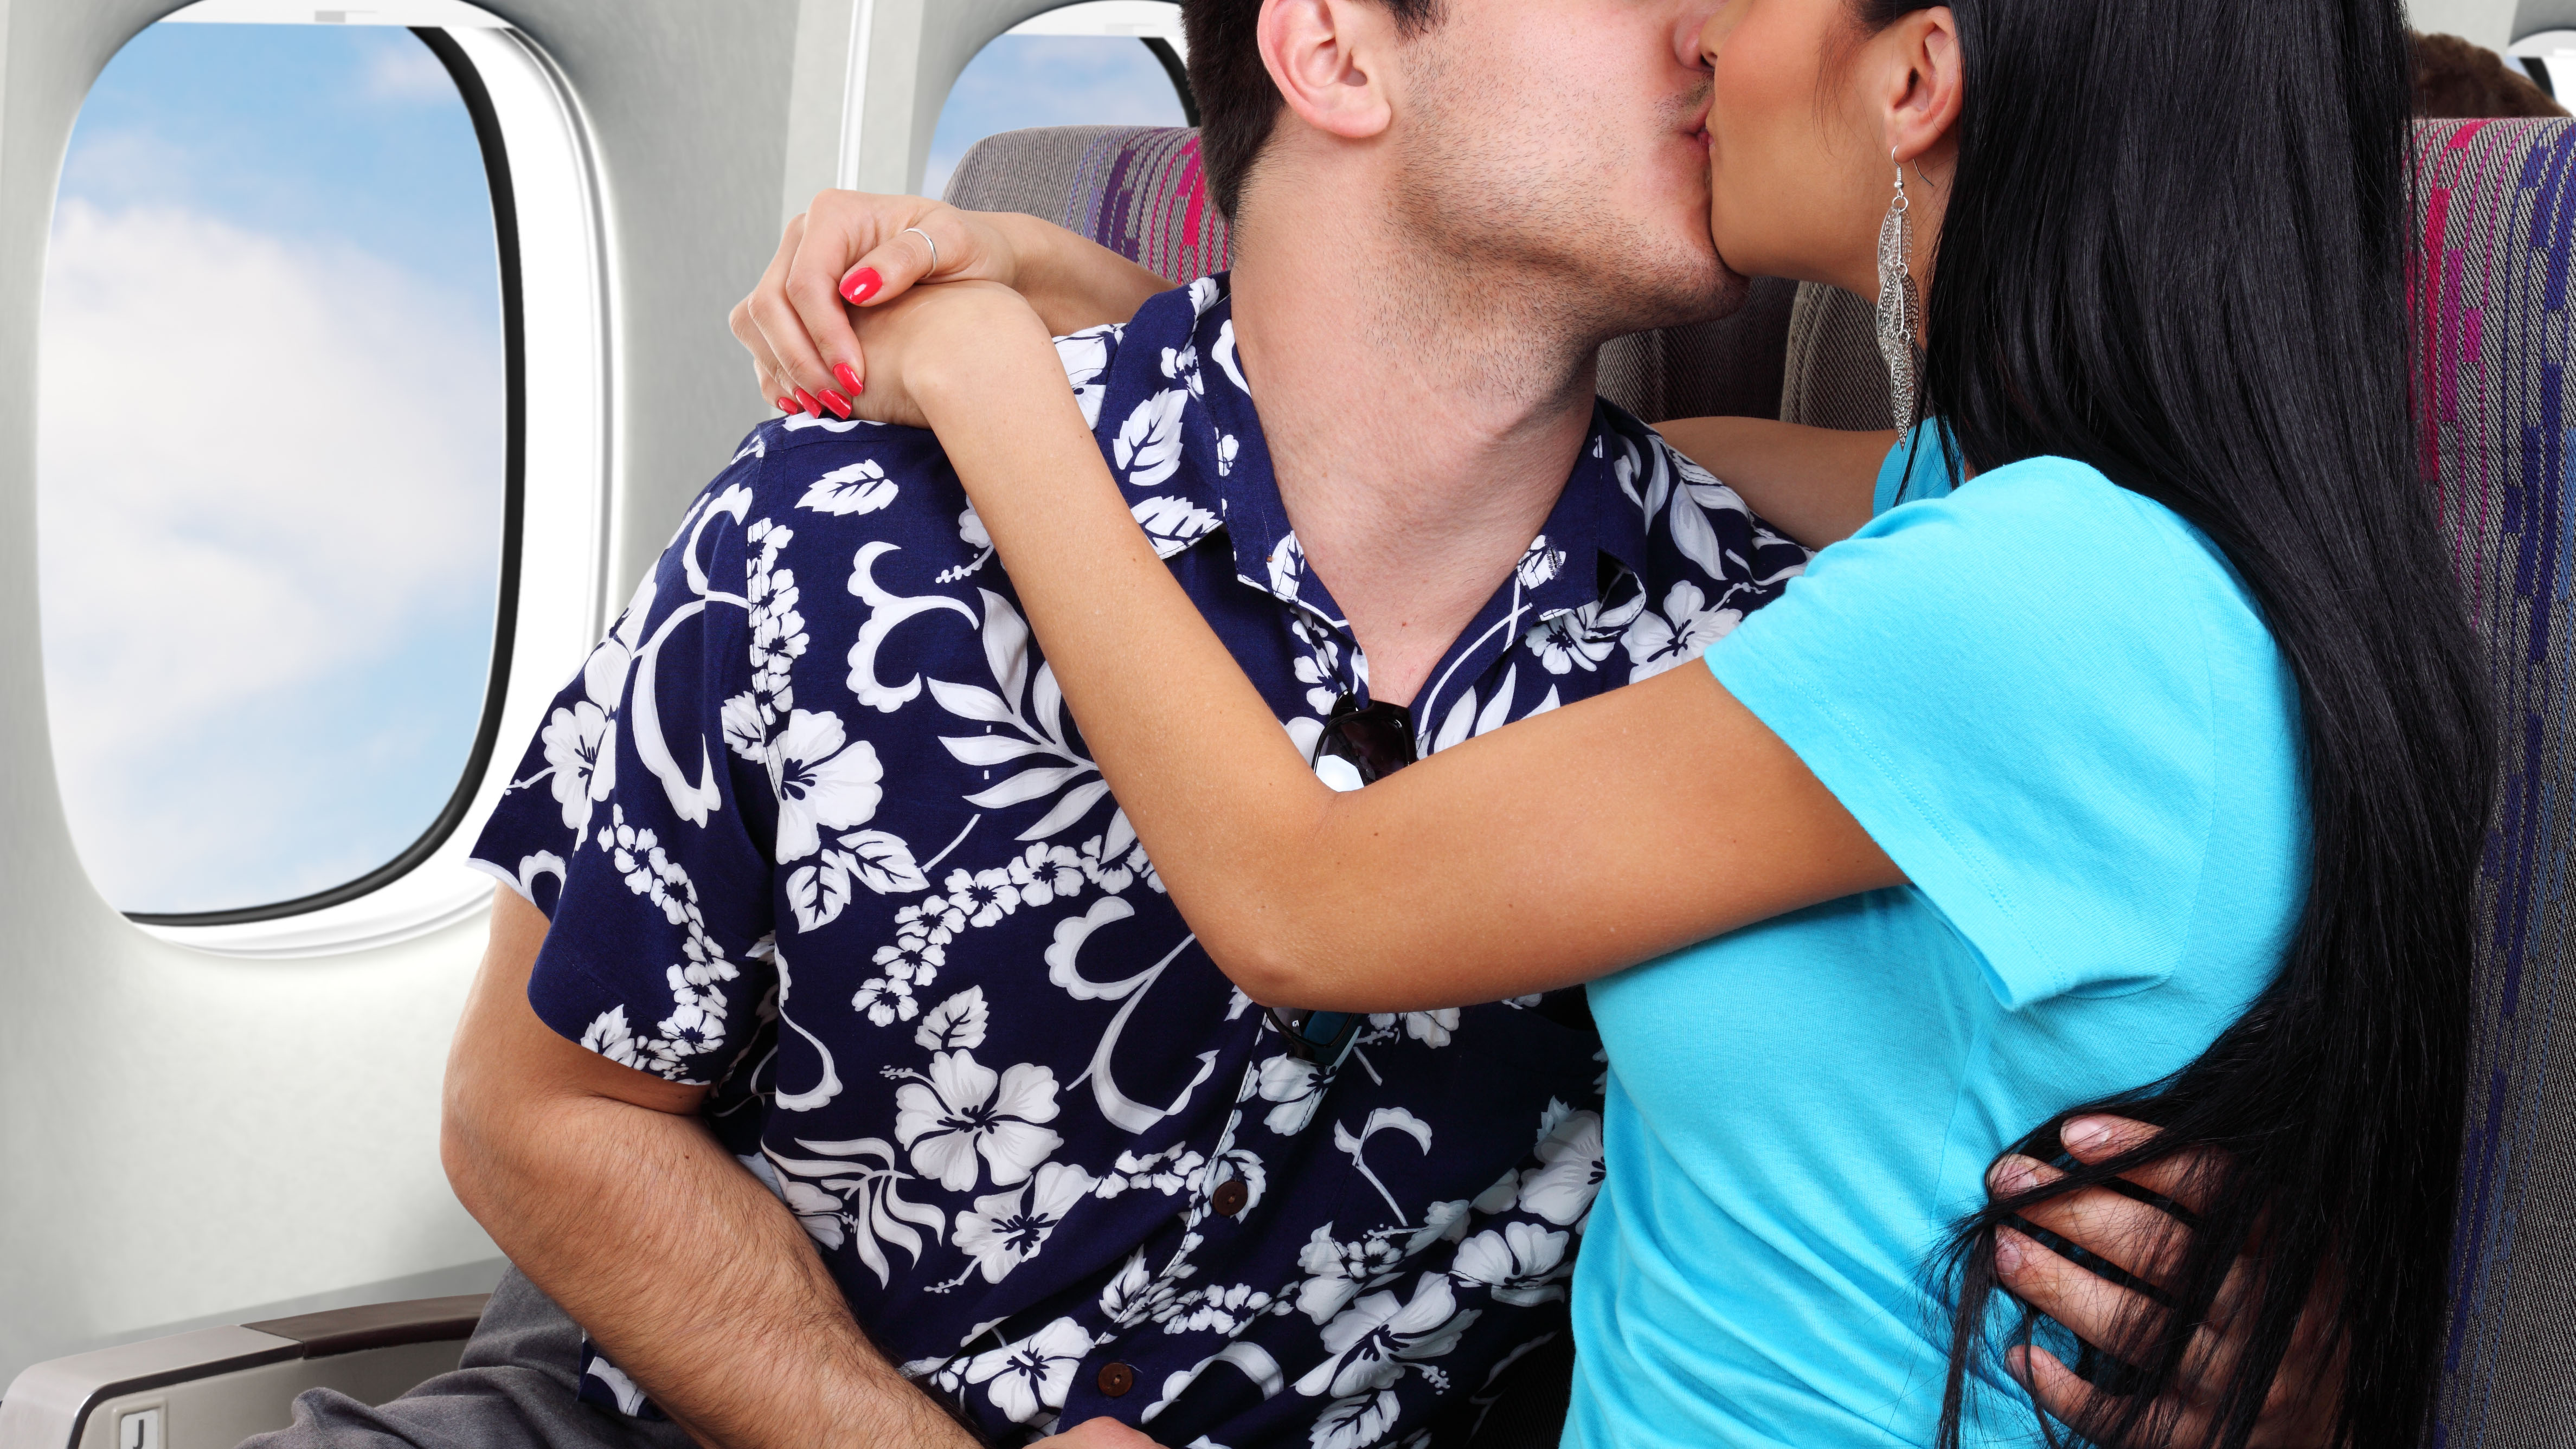 Filming of airplane passengers passionately making out deemed 'creepy' on social media